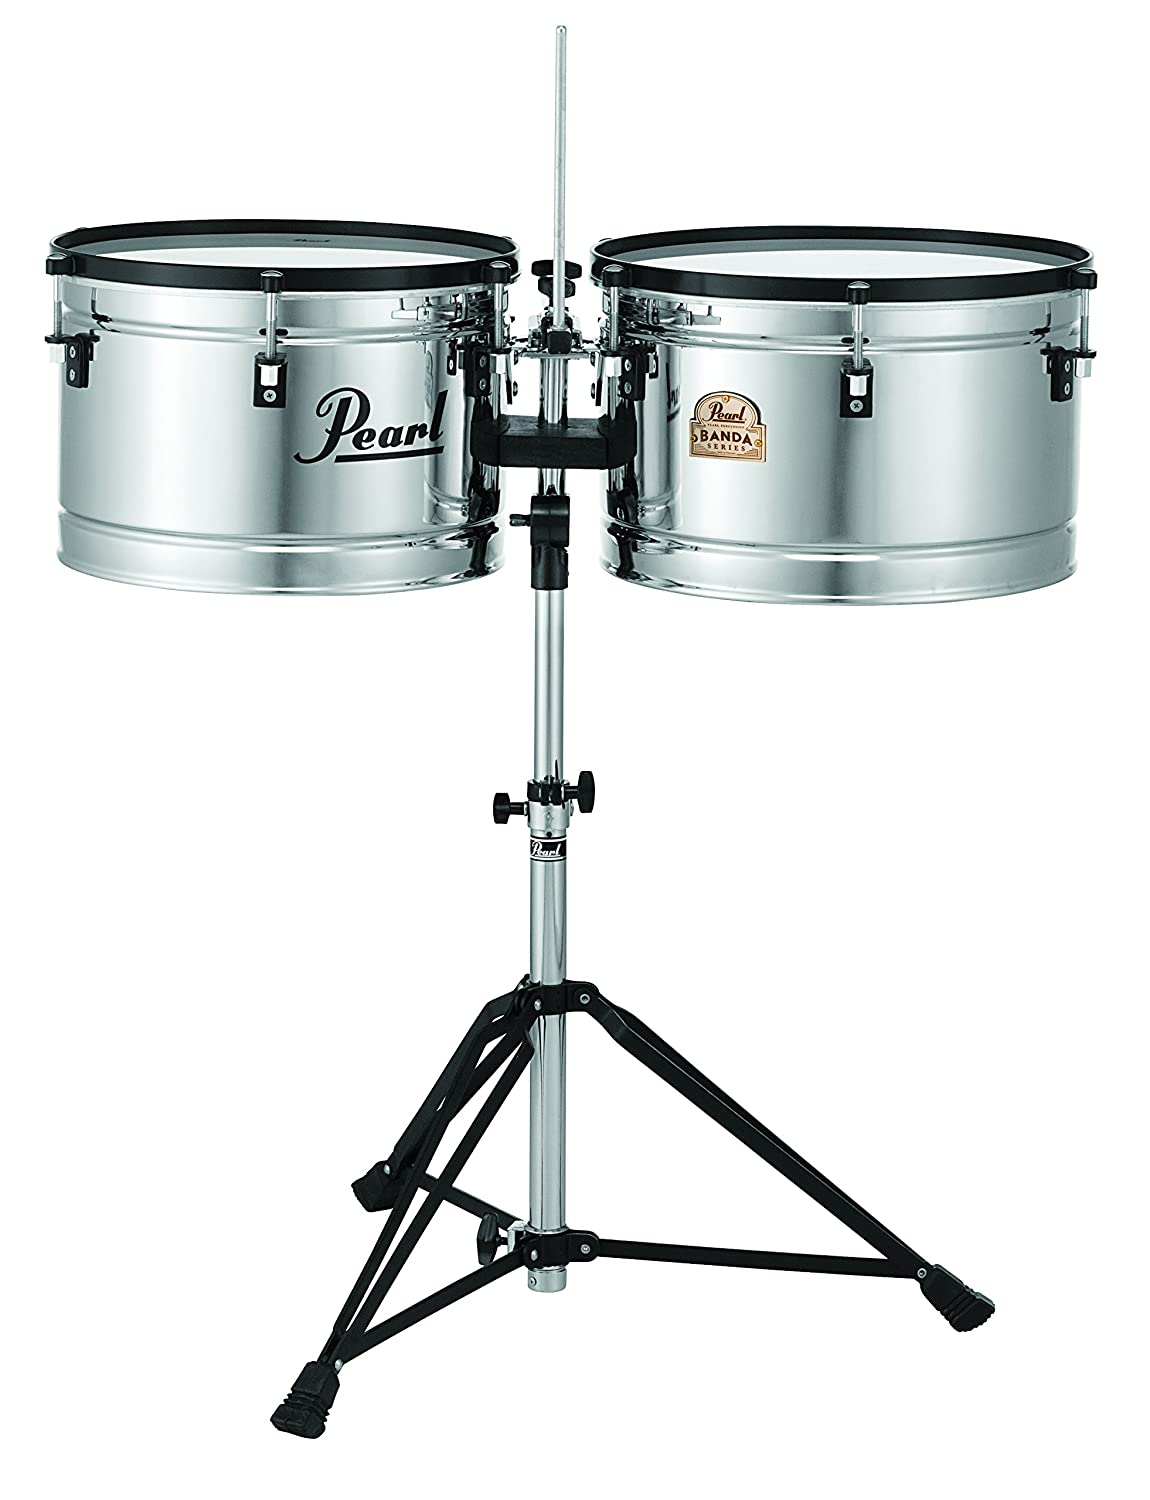 Pearl PBTM1516/C 15 x 10 Inches and 16 x 10 Inches Banda Timbales Pearl Corporation